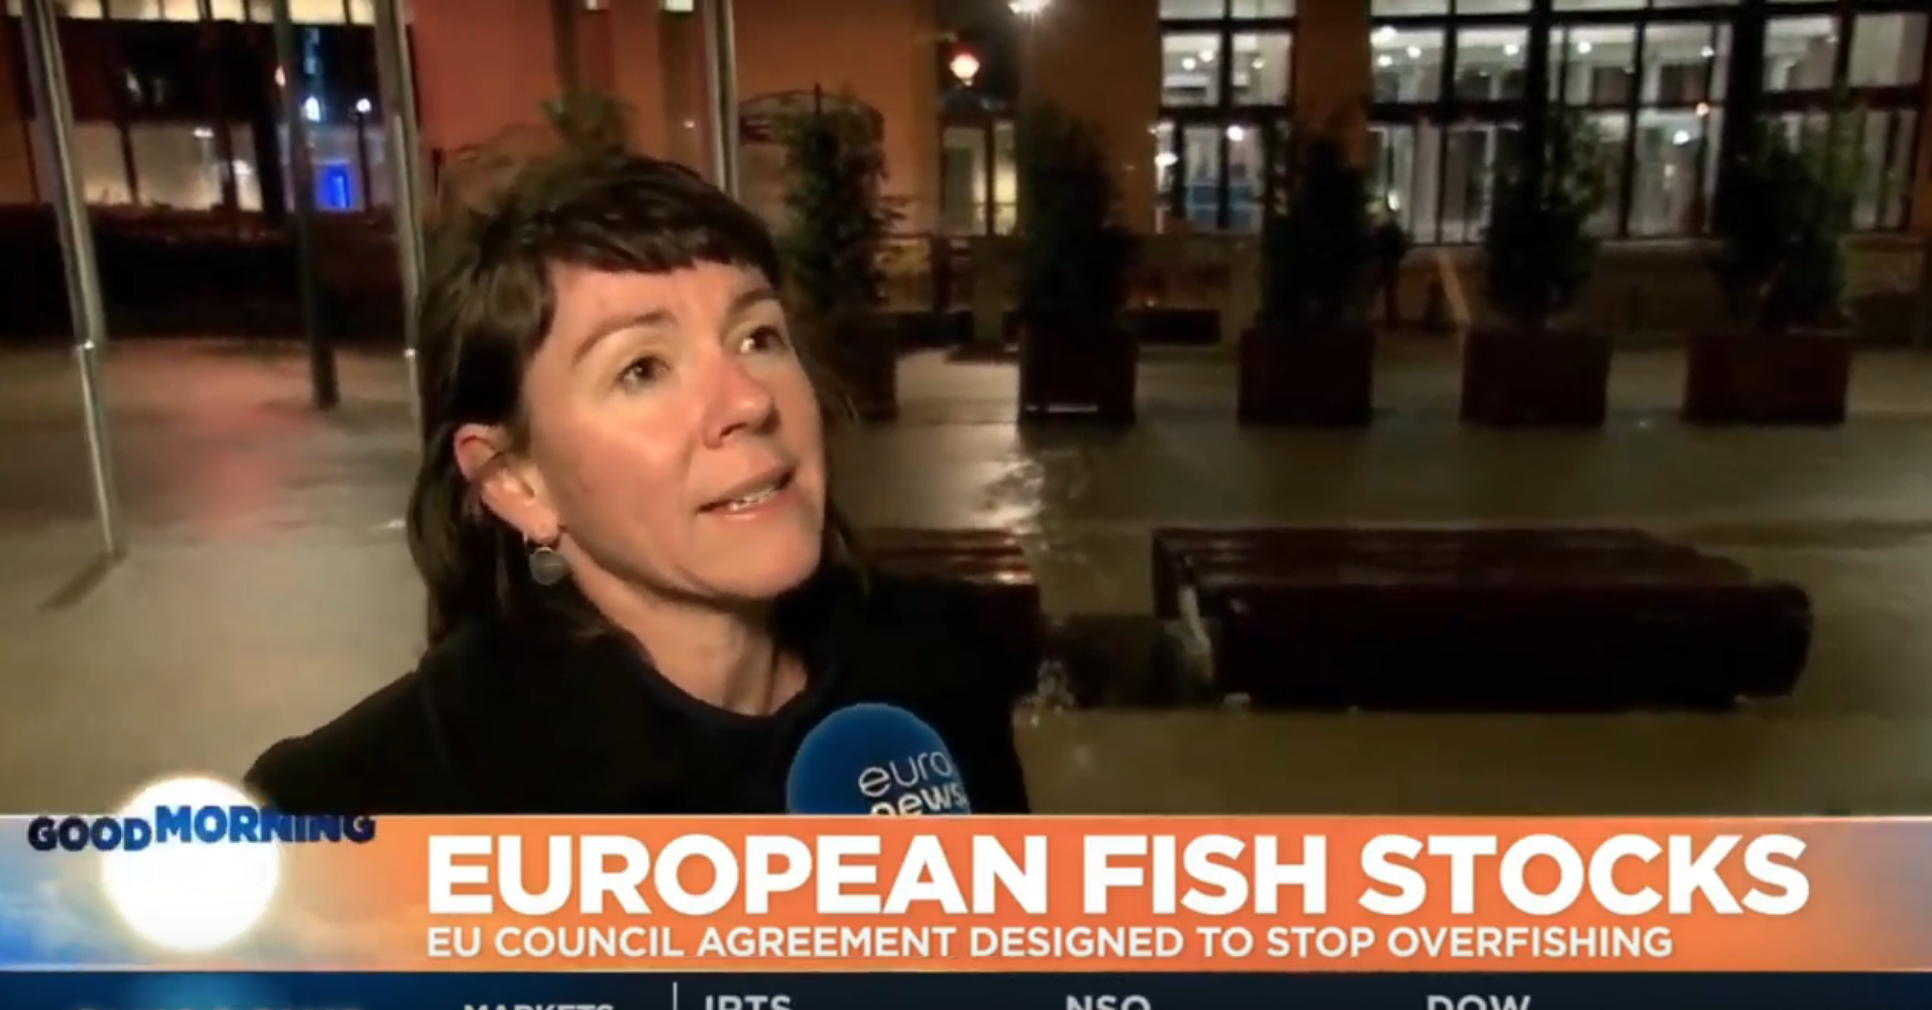 Euronews: Our Fish Program Director Rebecca Hubbard on EU Overfishing